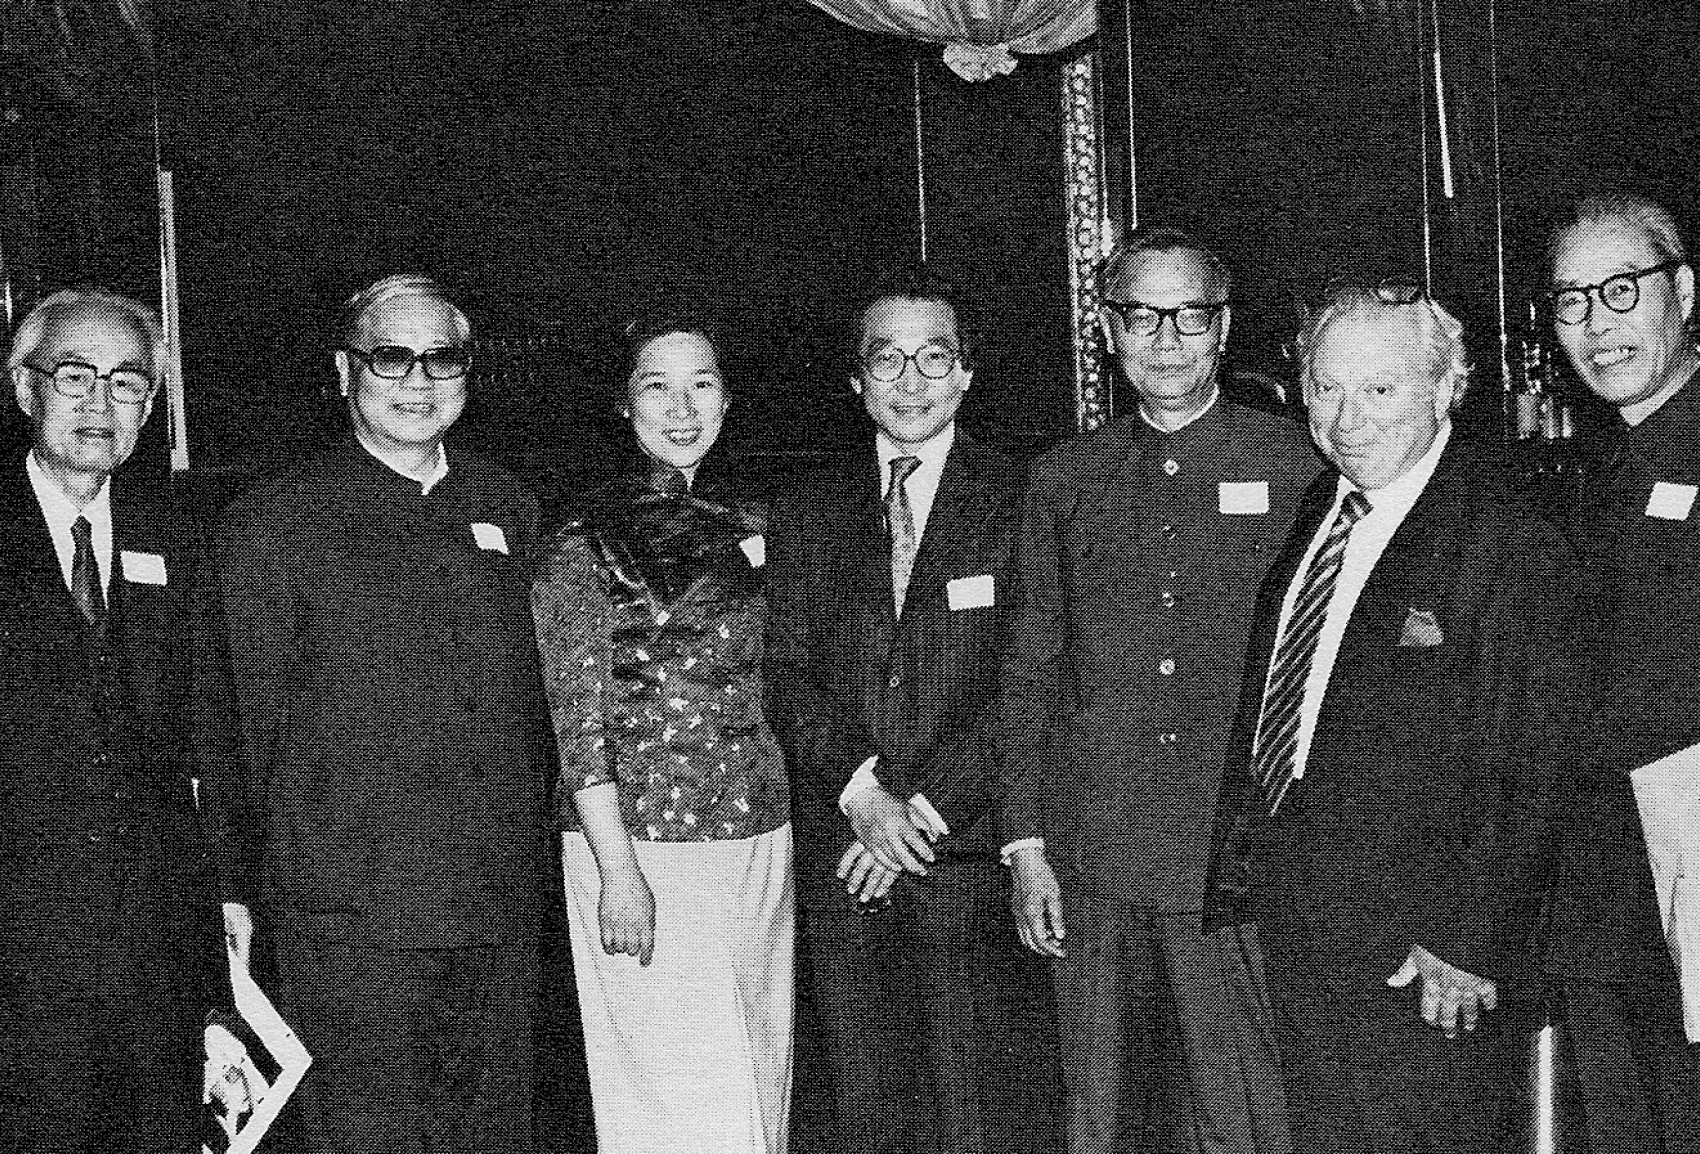 Violinist Isaac Stern meets with the Music and Arts Education Delegation at the welcoming reception at the Carnegie Cafe. Left to right: Tan Shuzhen, Zhao Feng, Zhou Ying, Chou Wen-chung, Lin Mohan, Isaac Stern and Wang Zicheng.